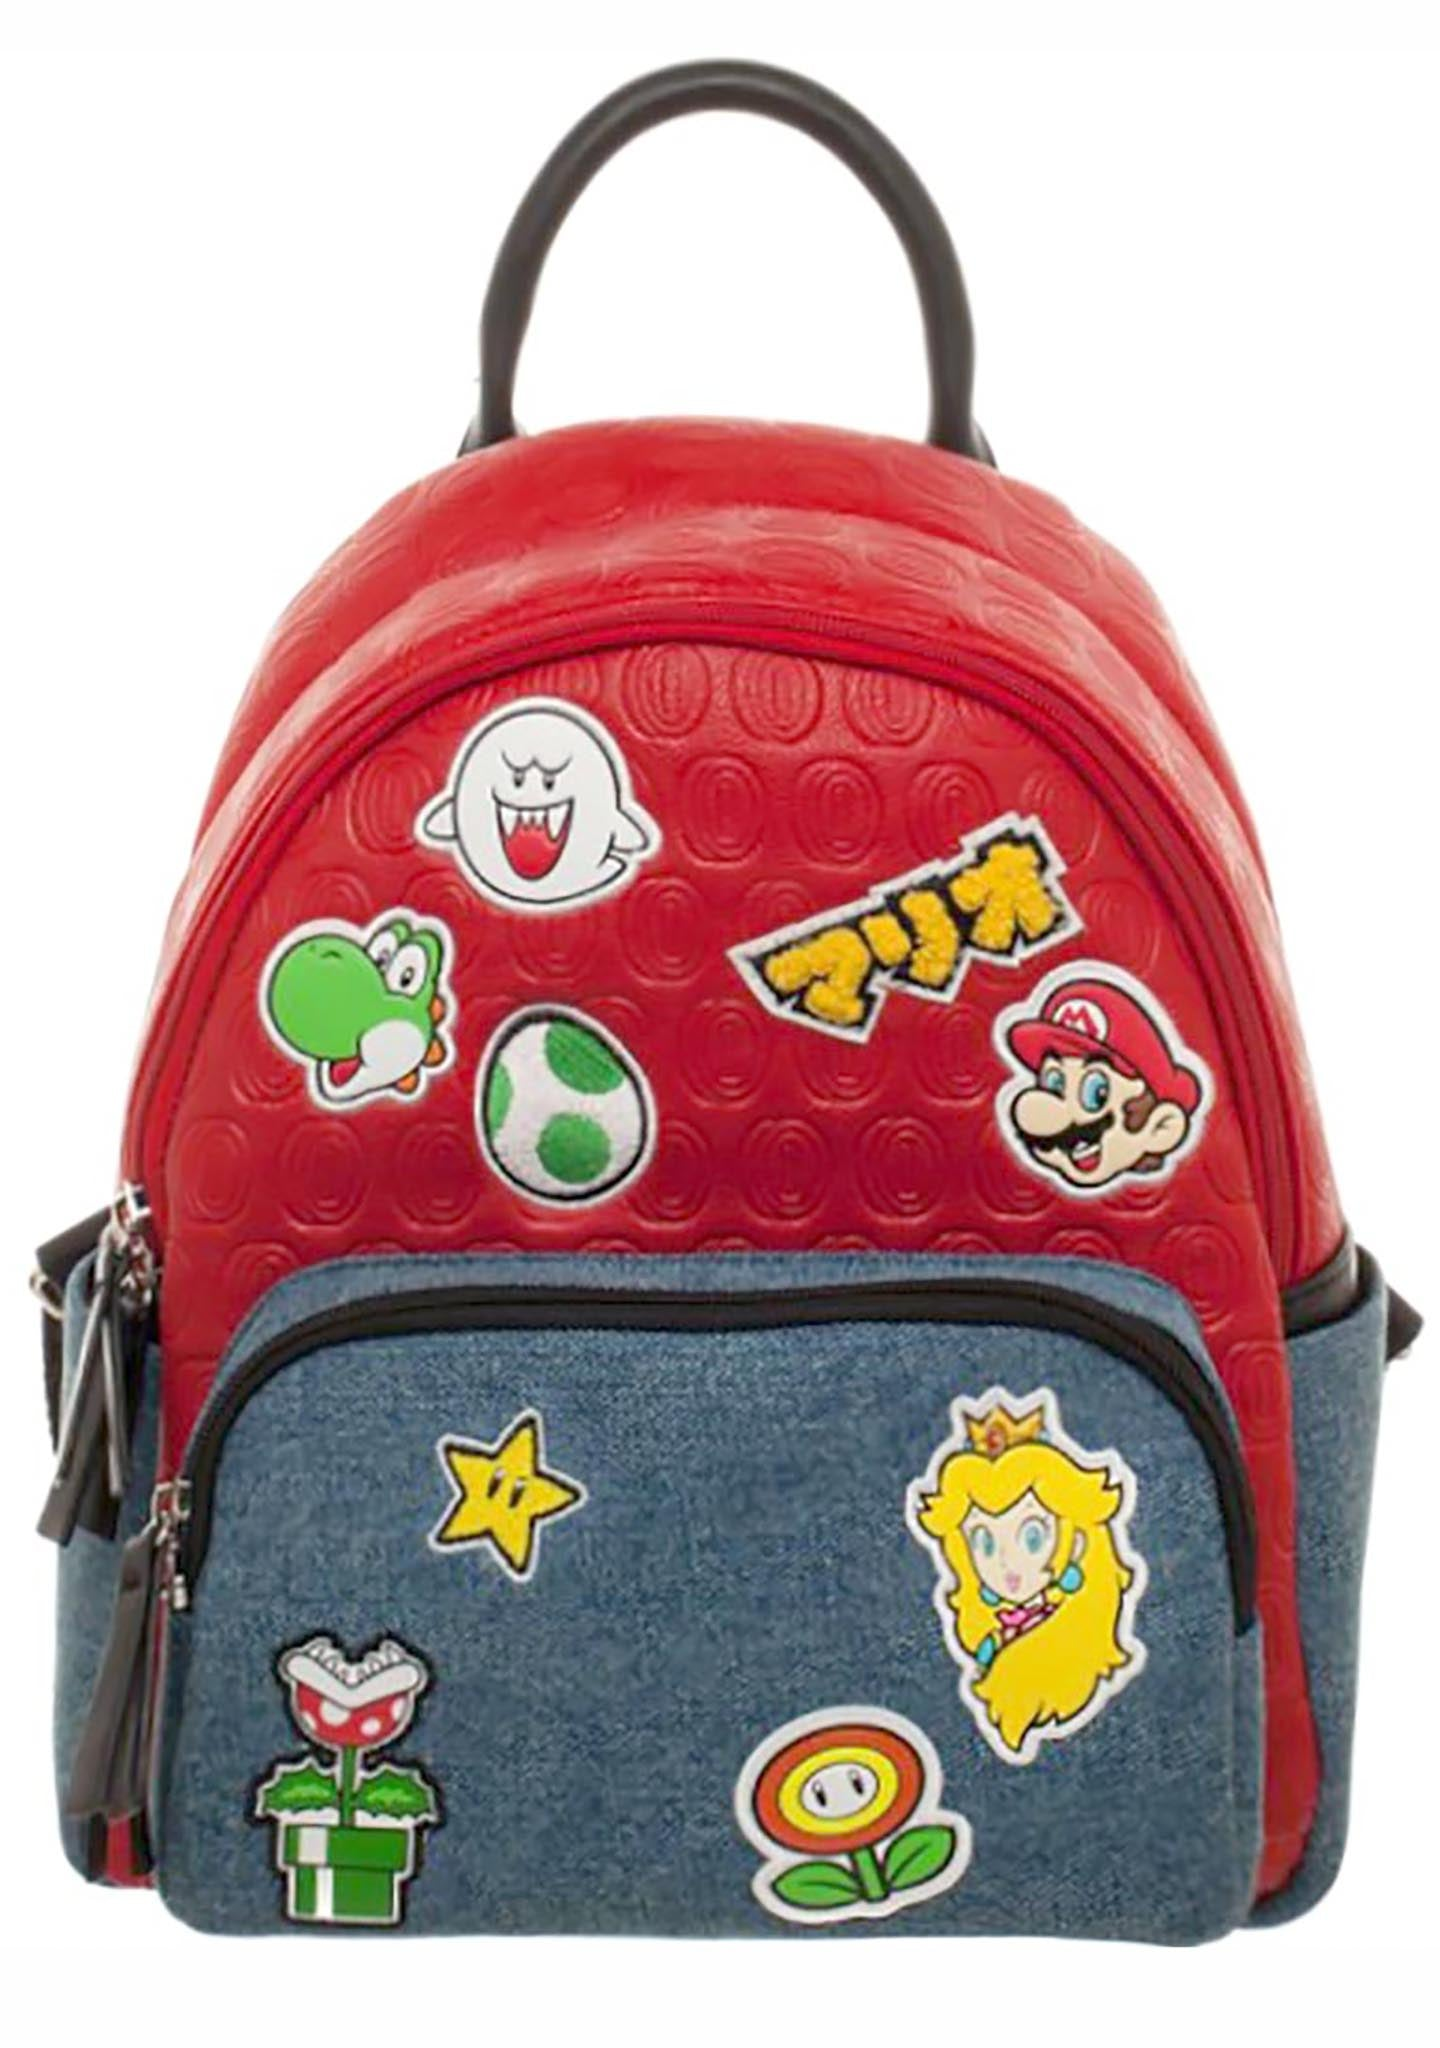 b401ceadcb X Nintendo Super Mario Brothers Patches Mini Backpack